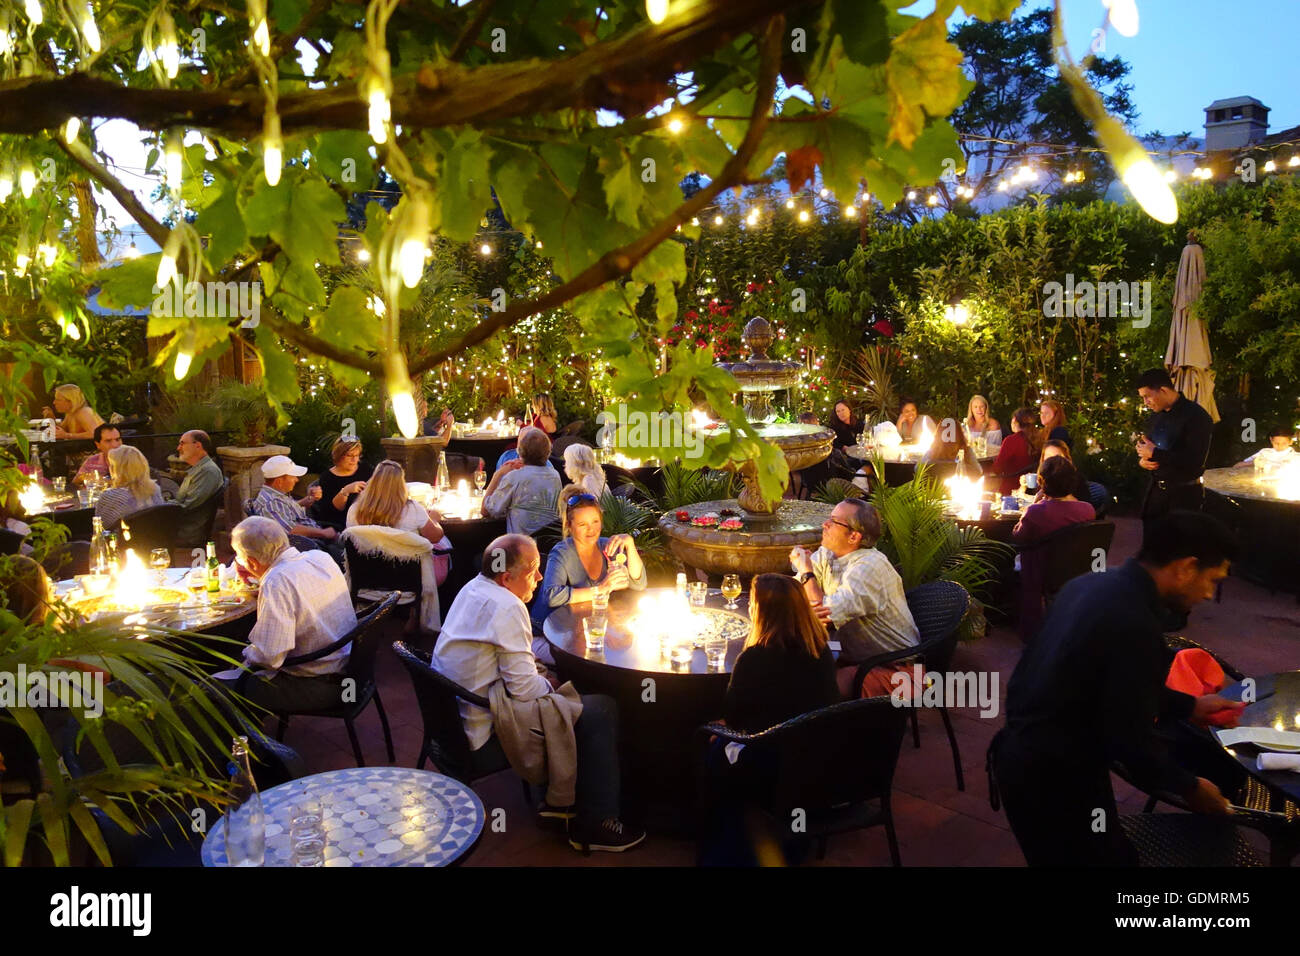 Outdoor Patio Garden Of Zaytoon Middle Eastern Restaurant In Santa Barbara  On Central Coast Of Southern